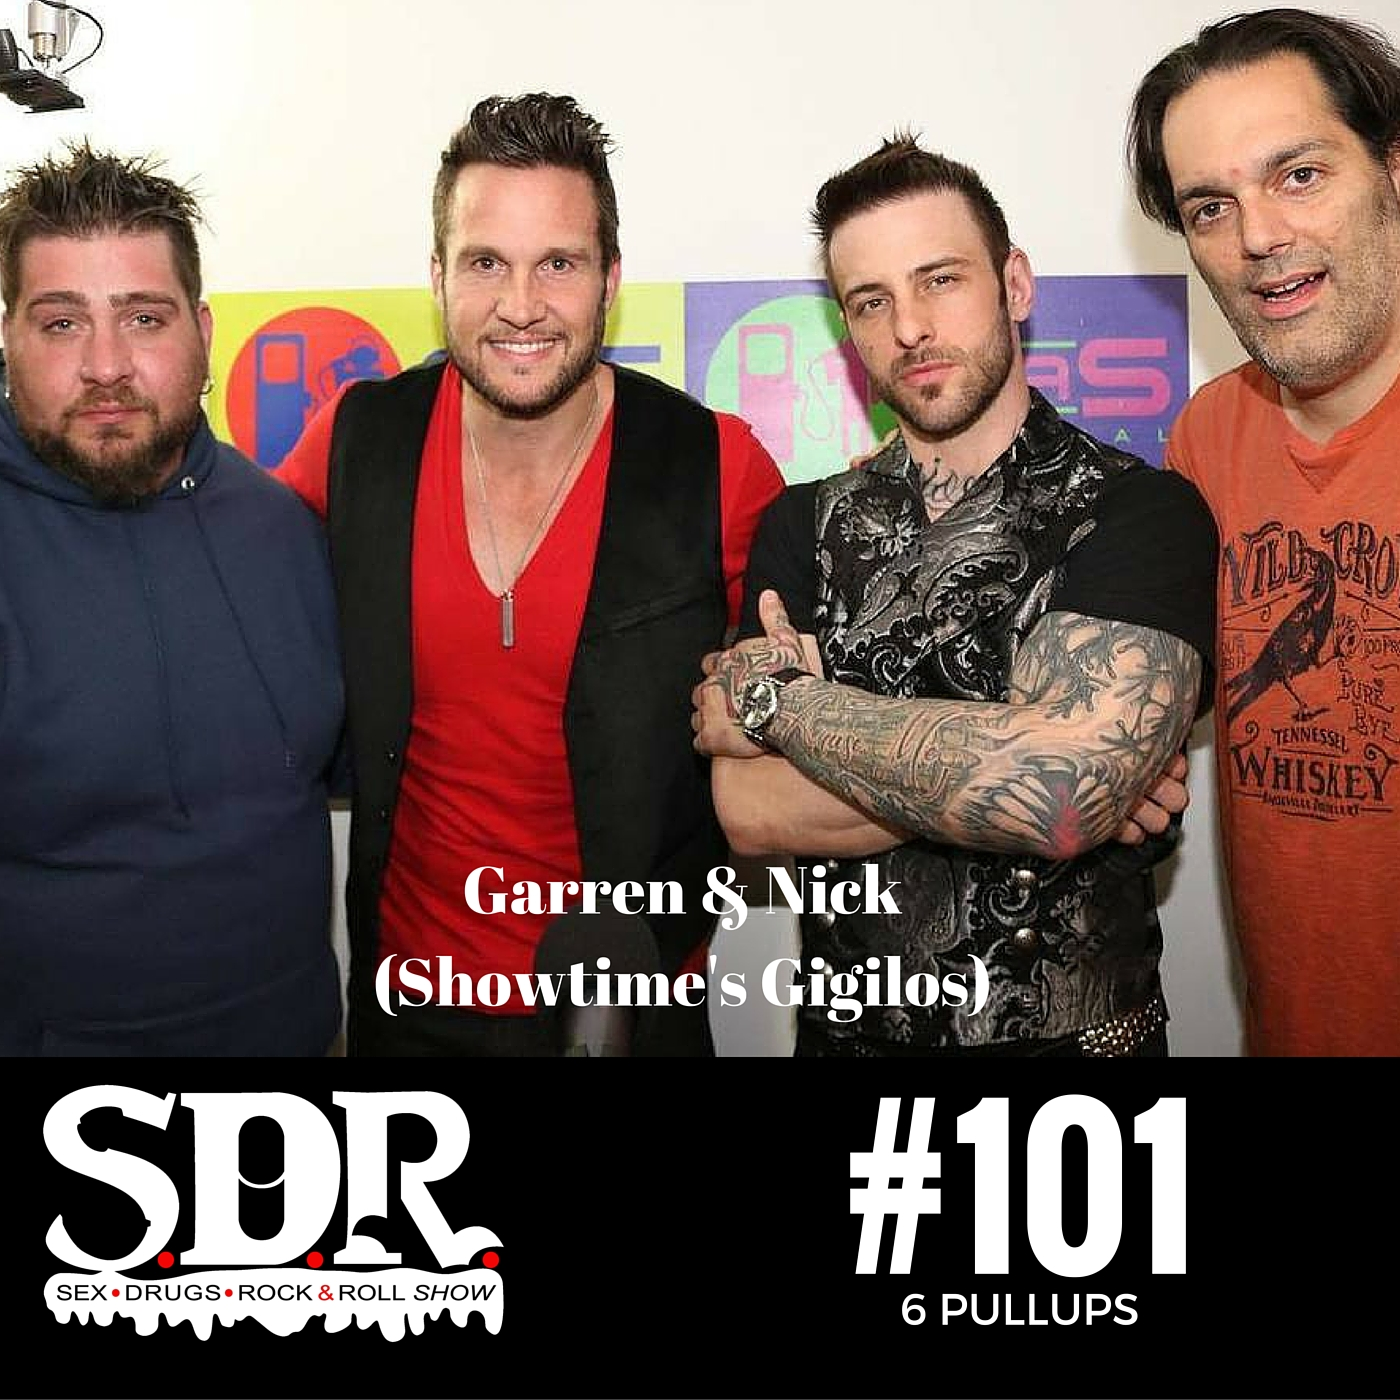 SDR 101 - Nick Hawk & Garren James (Showtime's Gigilos)